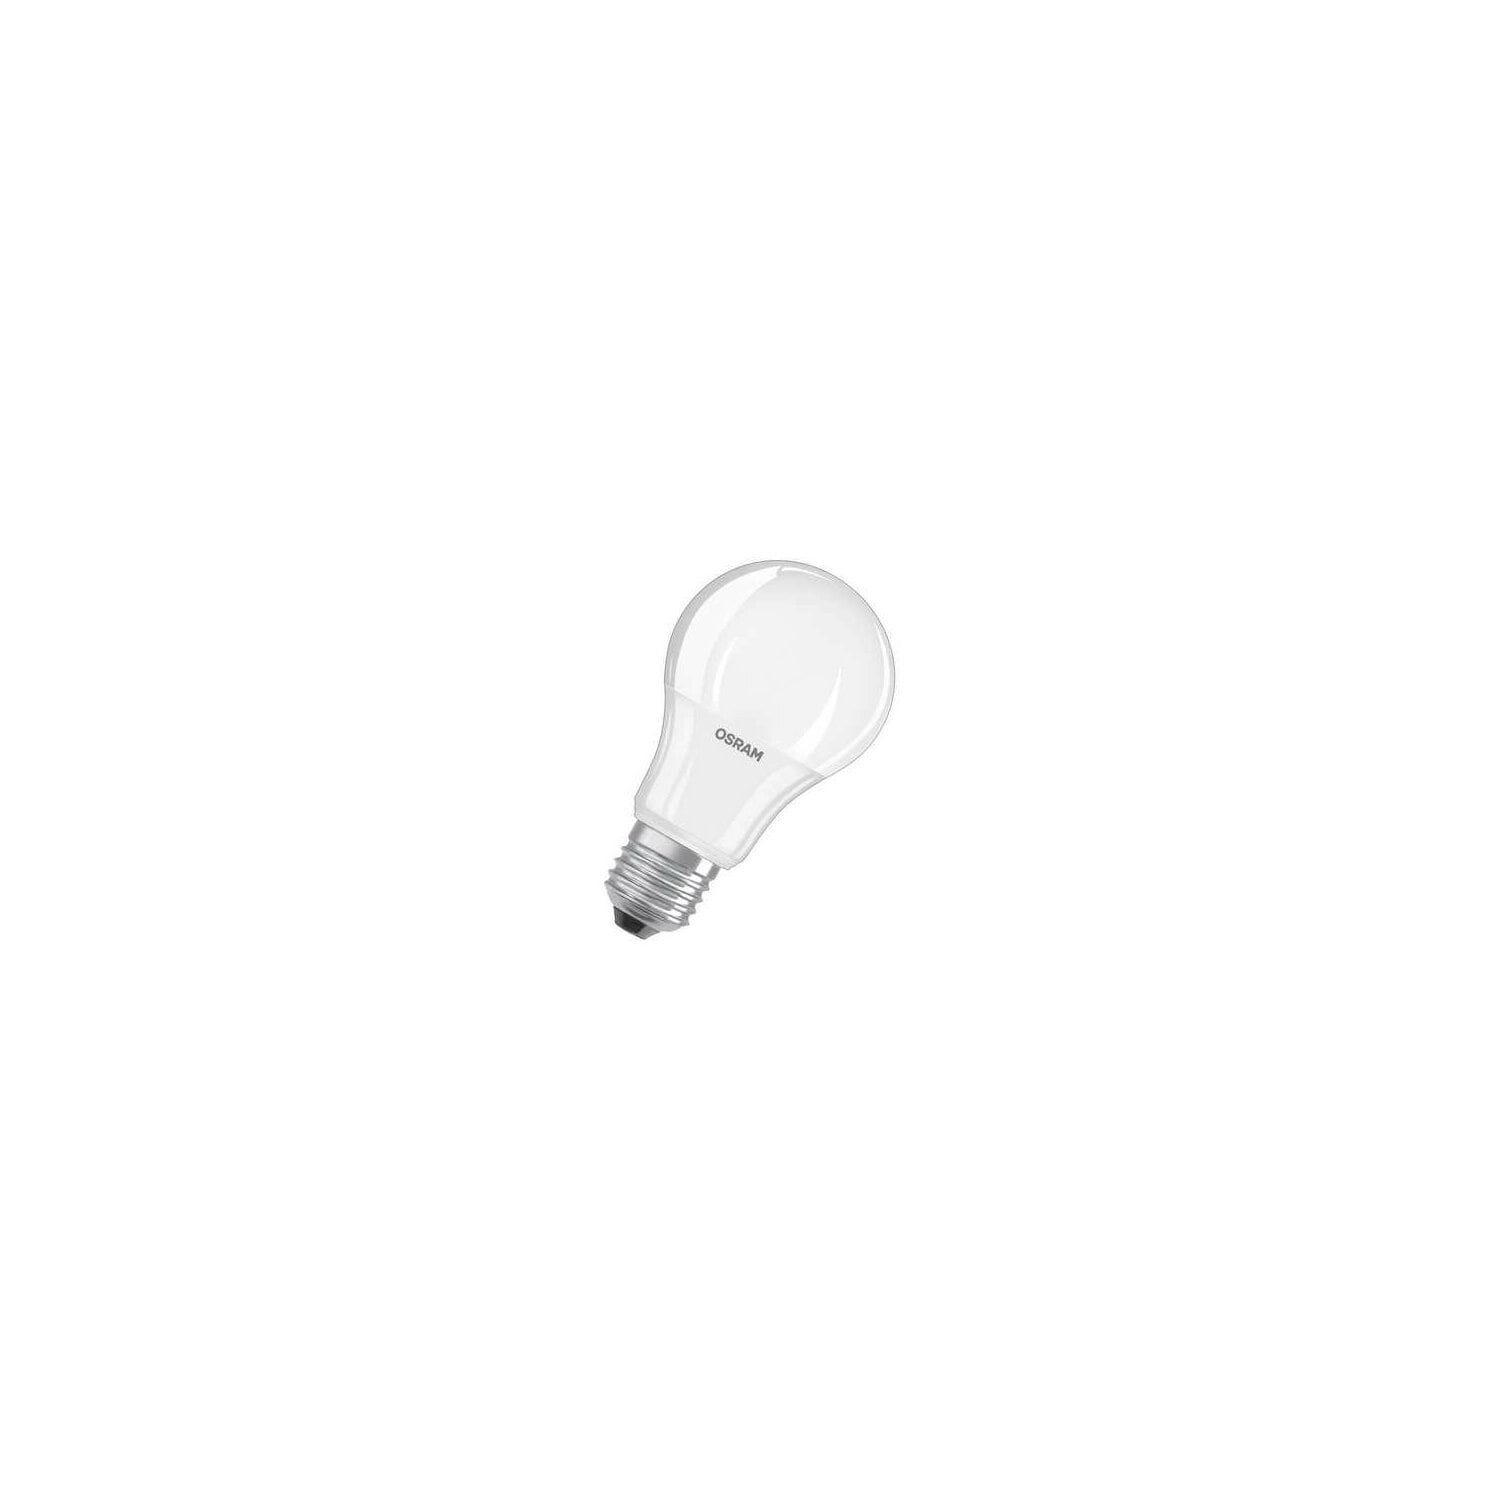 Żarówka LED OSRAM Value CL A 60 10W/827 220-240V E27